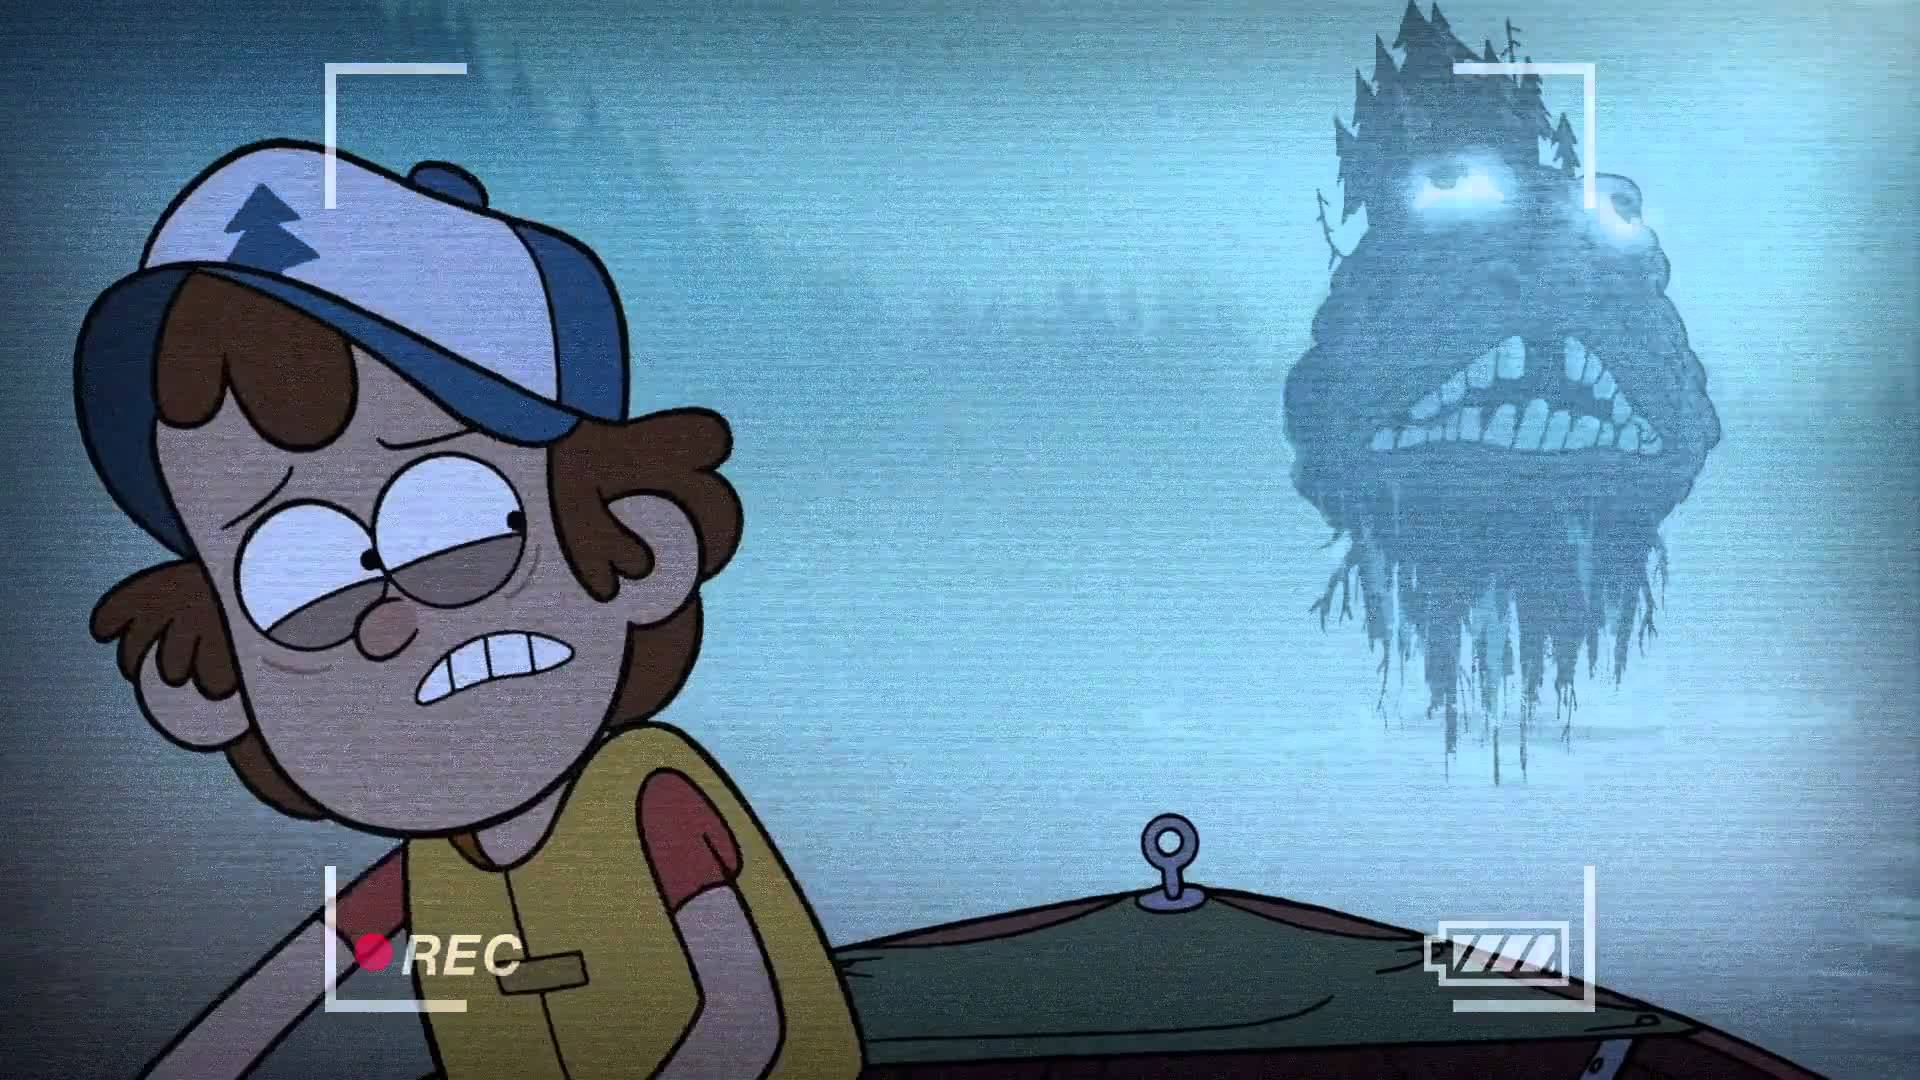 Gravity Fall Computer Wallpaper Gravity Falls Wallpapers High Quality Download Free